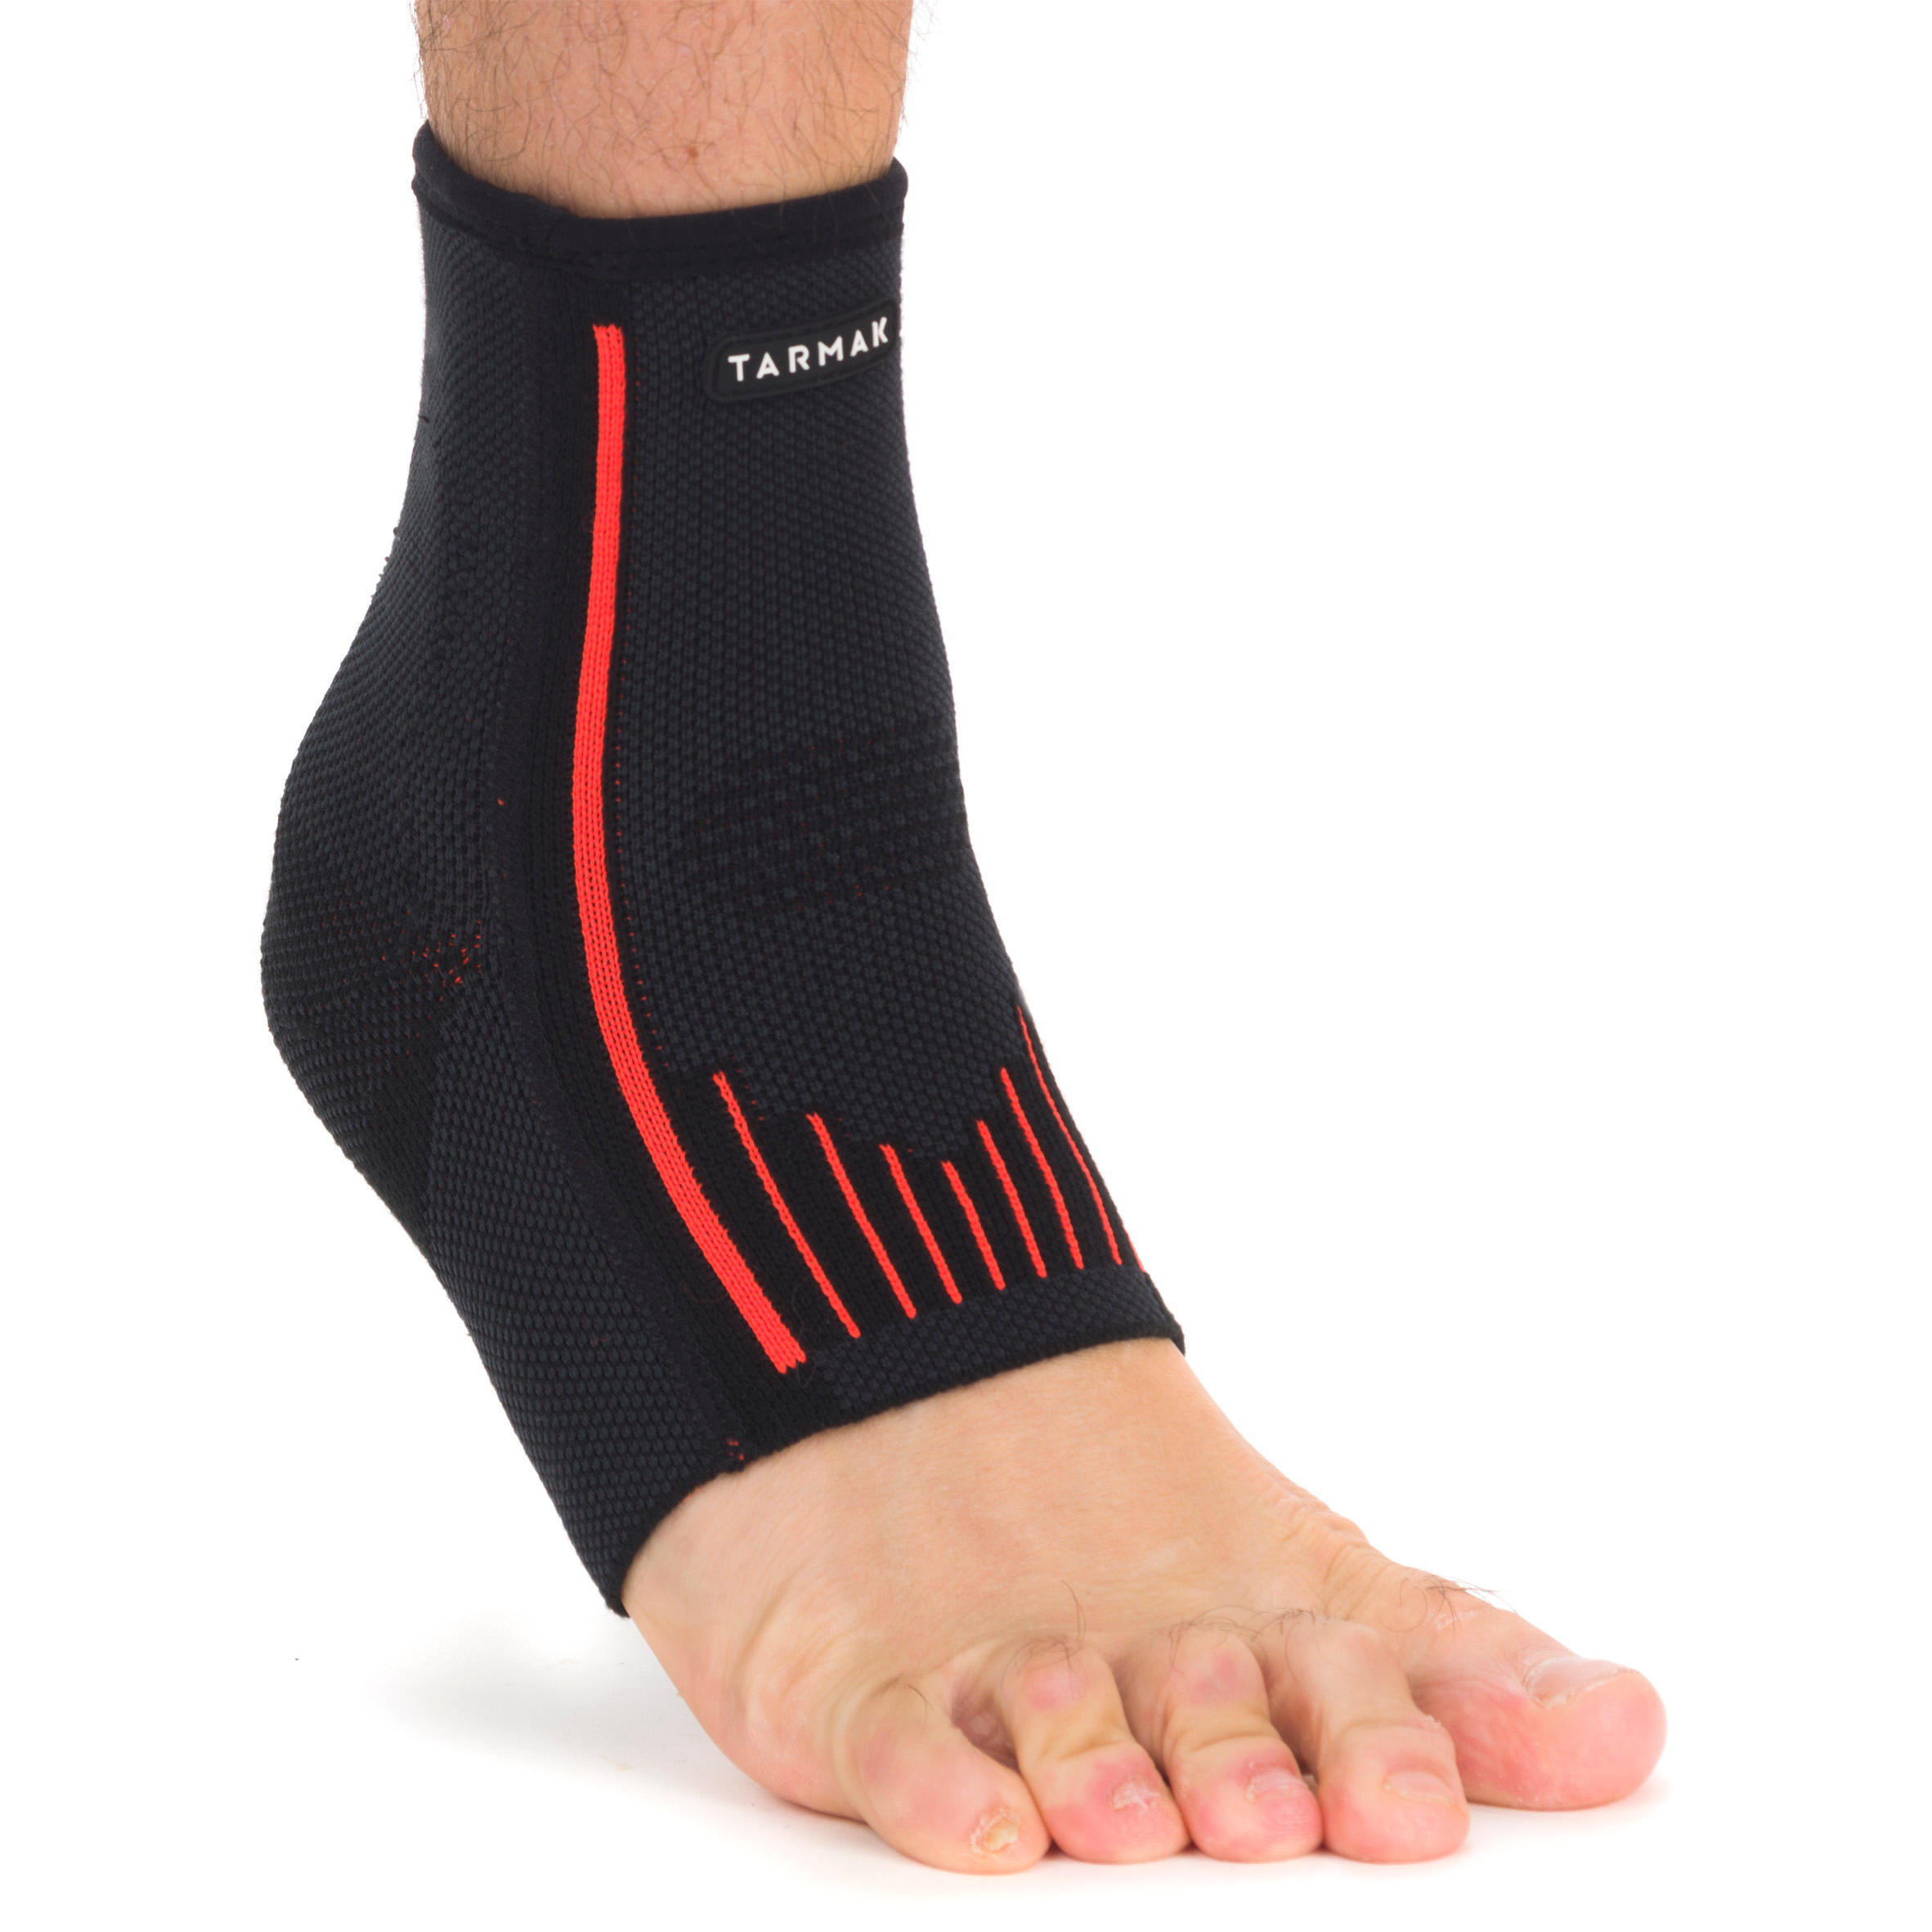 Soft 500 Adult Ankle Brace - Black